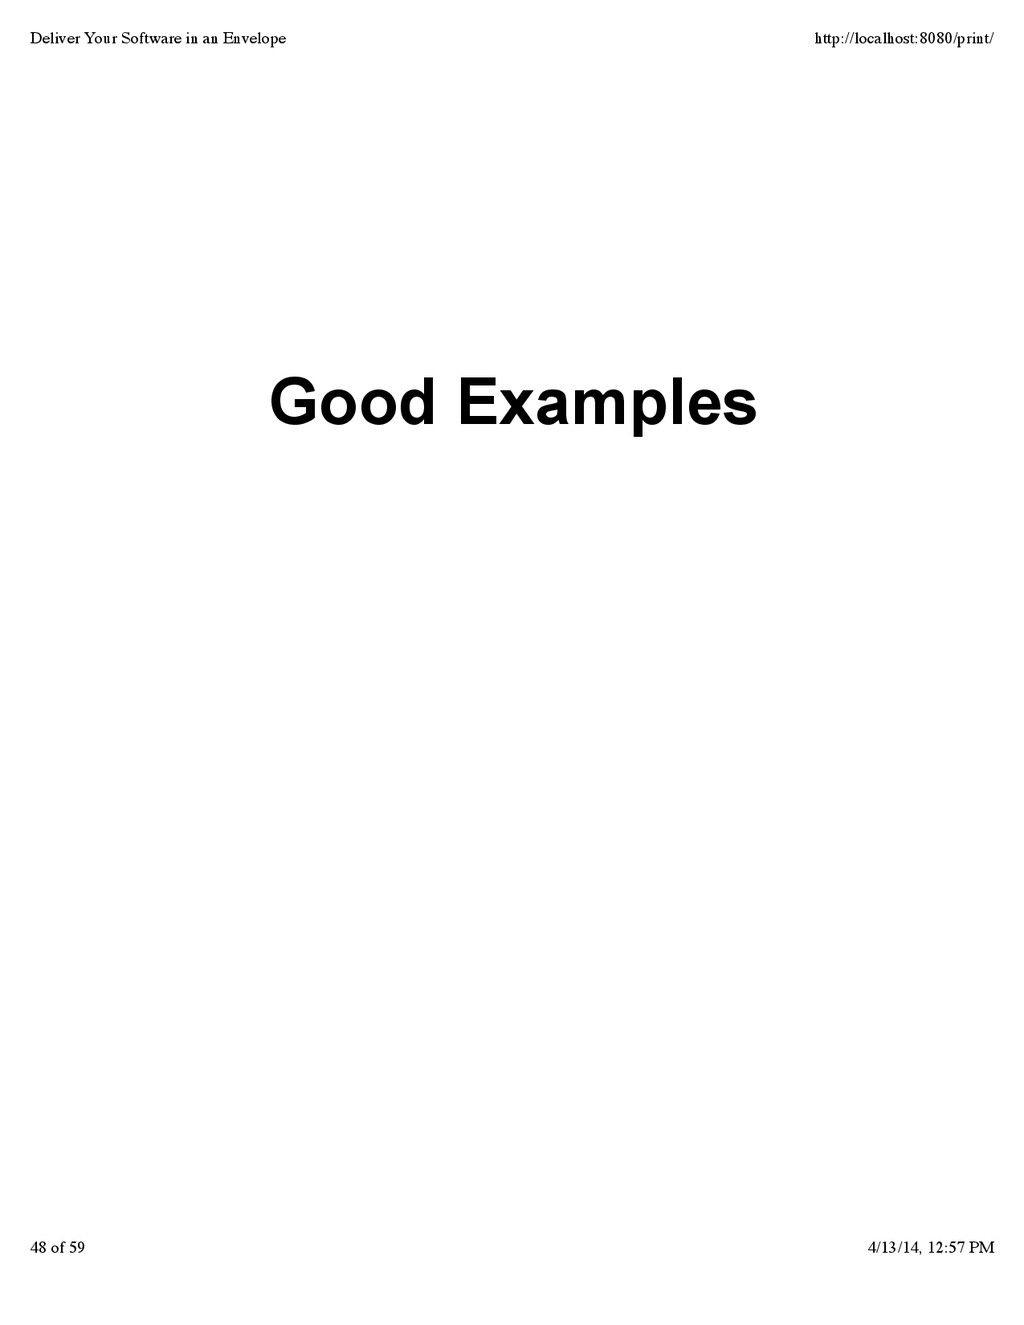 Good Examples Deliver Your Software in an Envel...